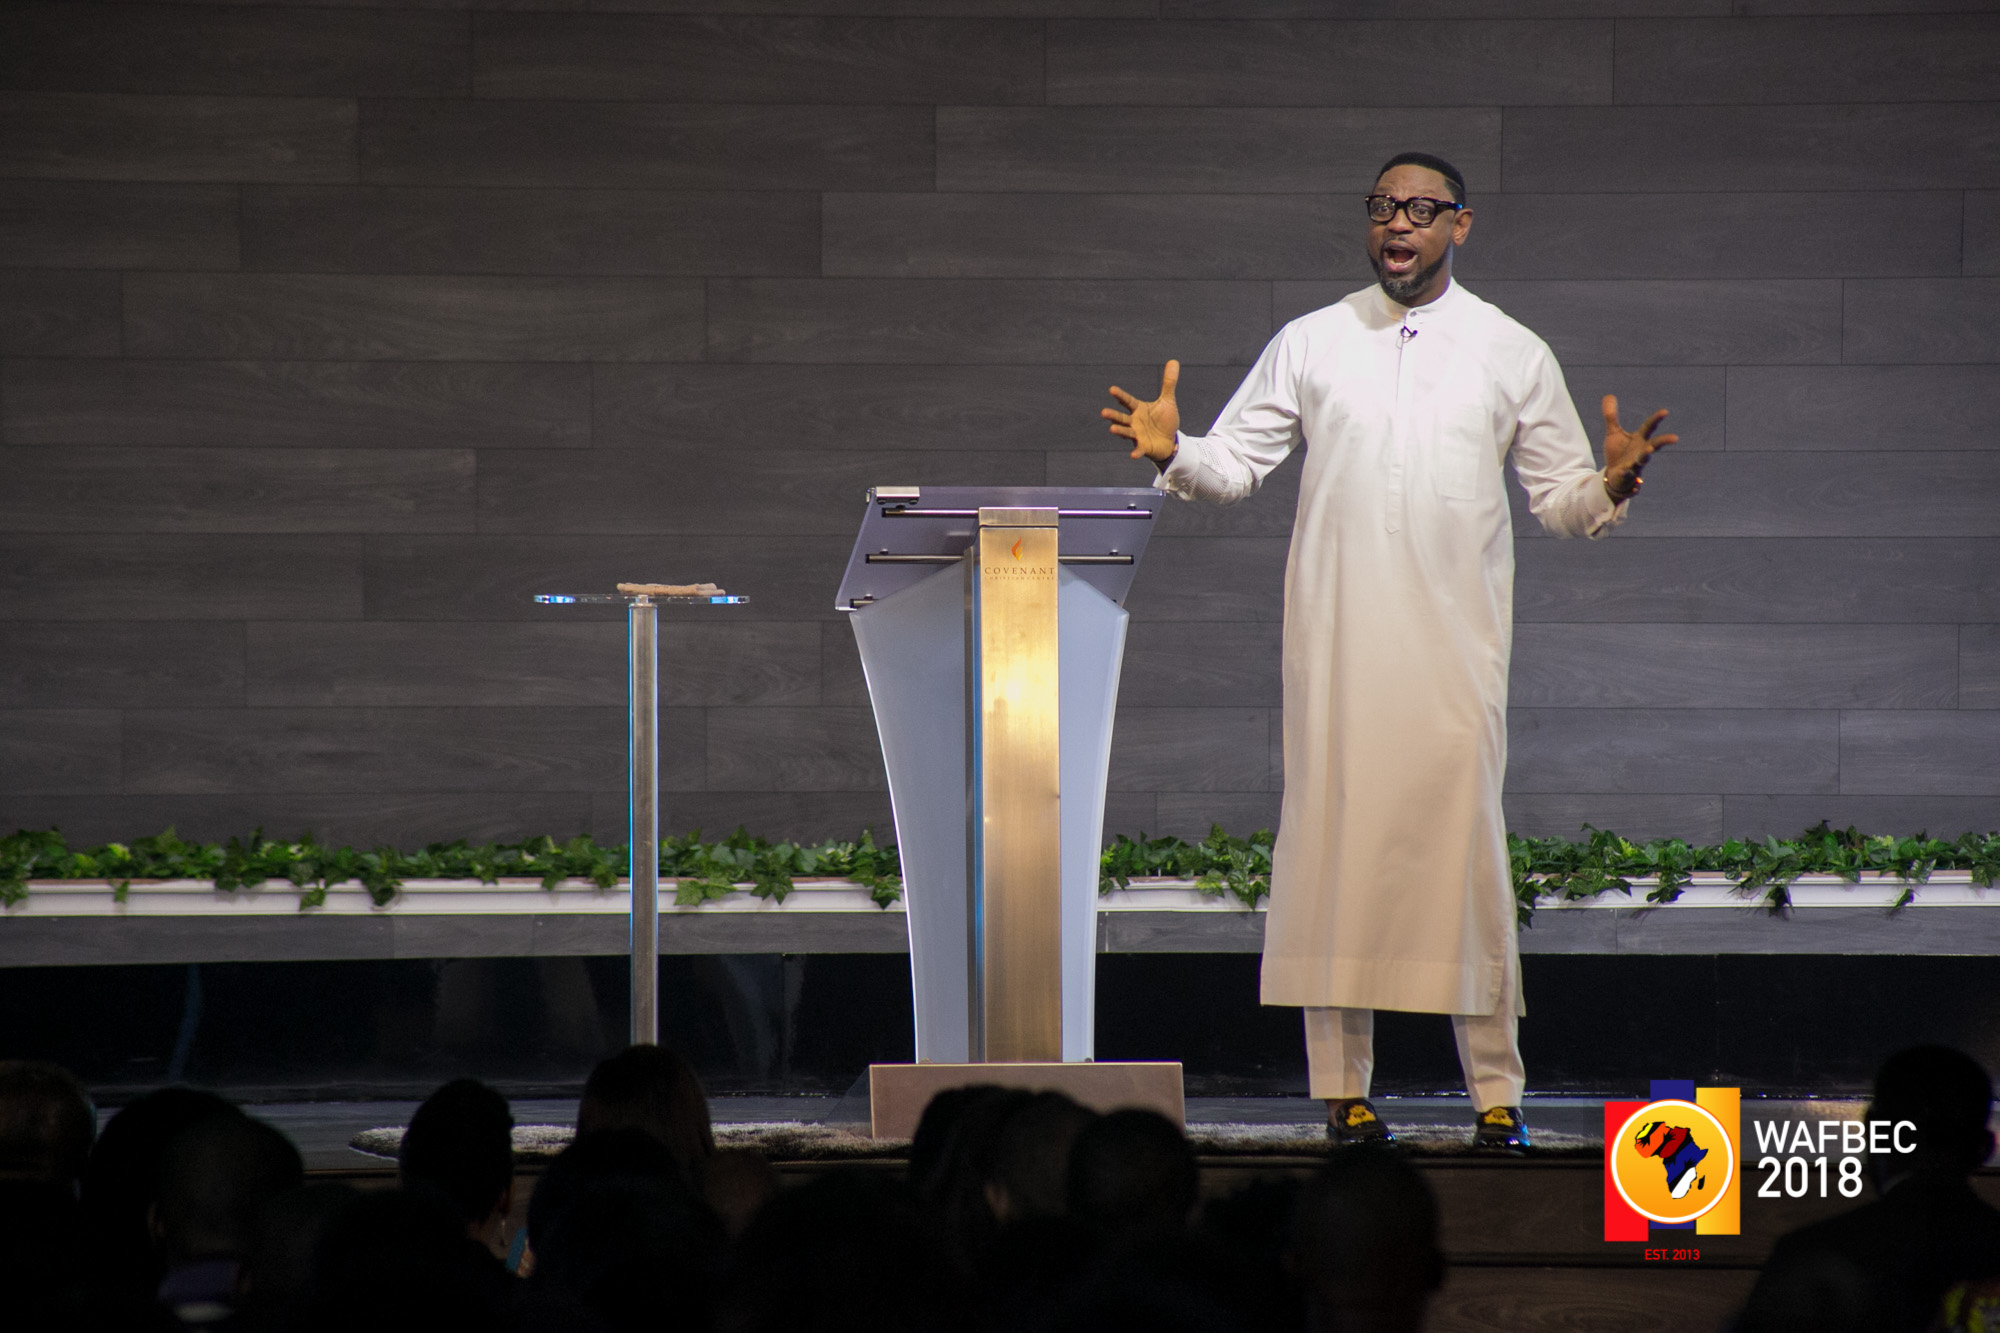 WAFBEC 2018 – Day 3 (Afternoon Session 1) with Rev. Biodun Fatoyinbo